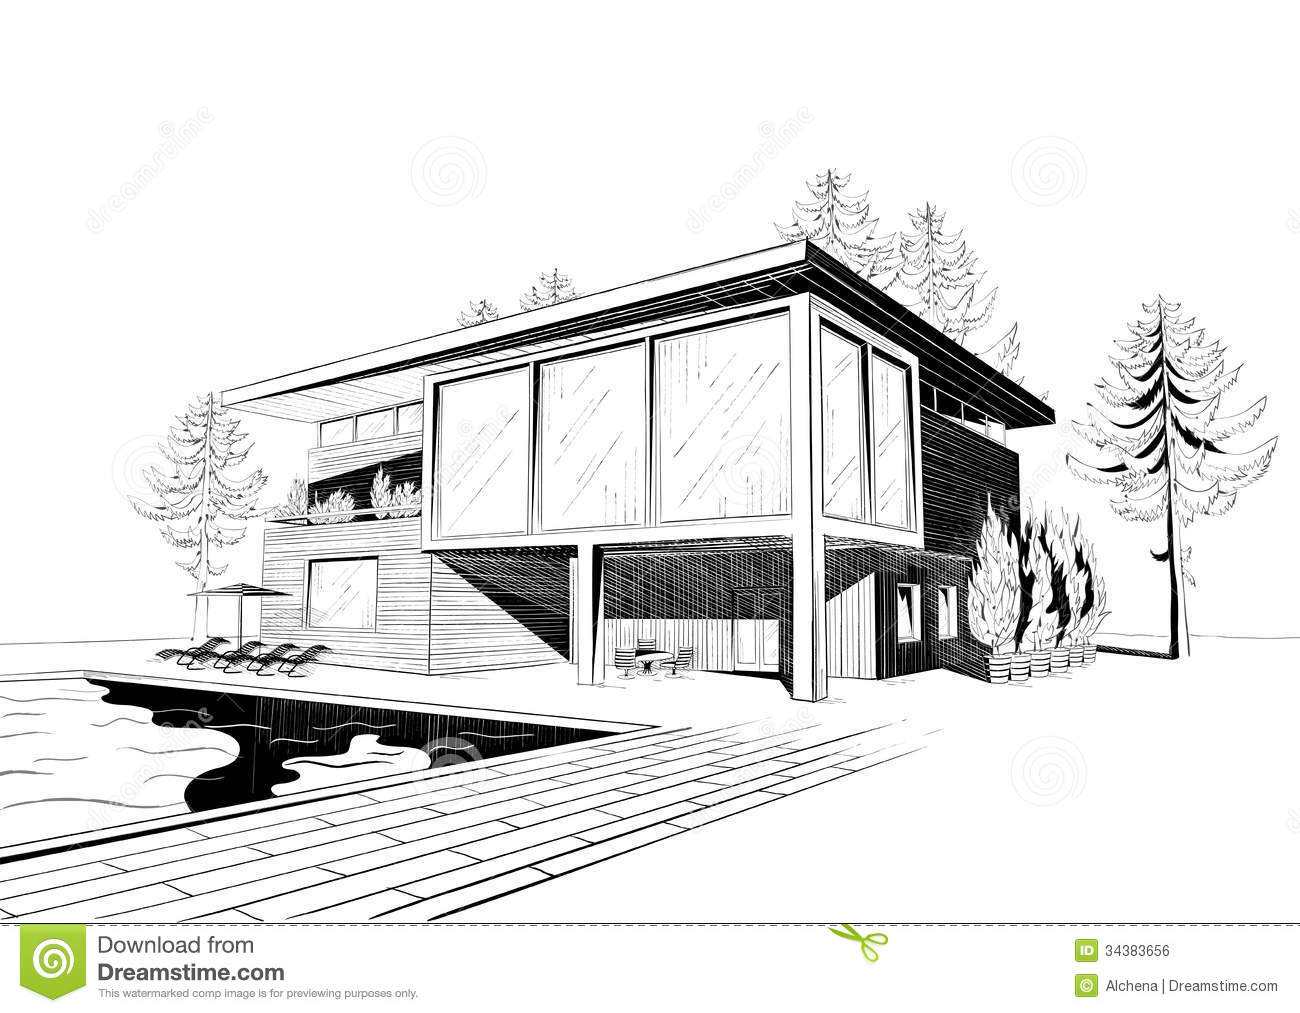 House Architecture Drawing modern house drawings – modern house